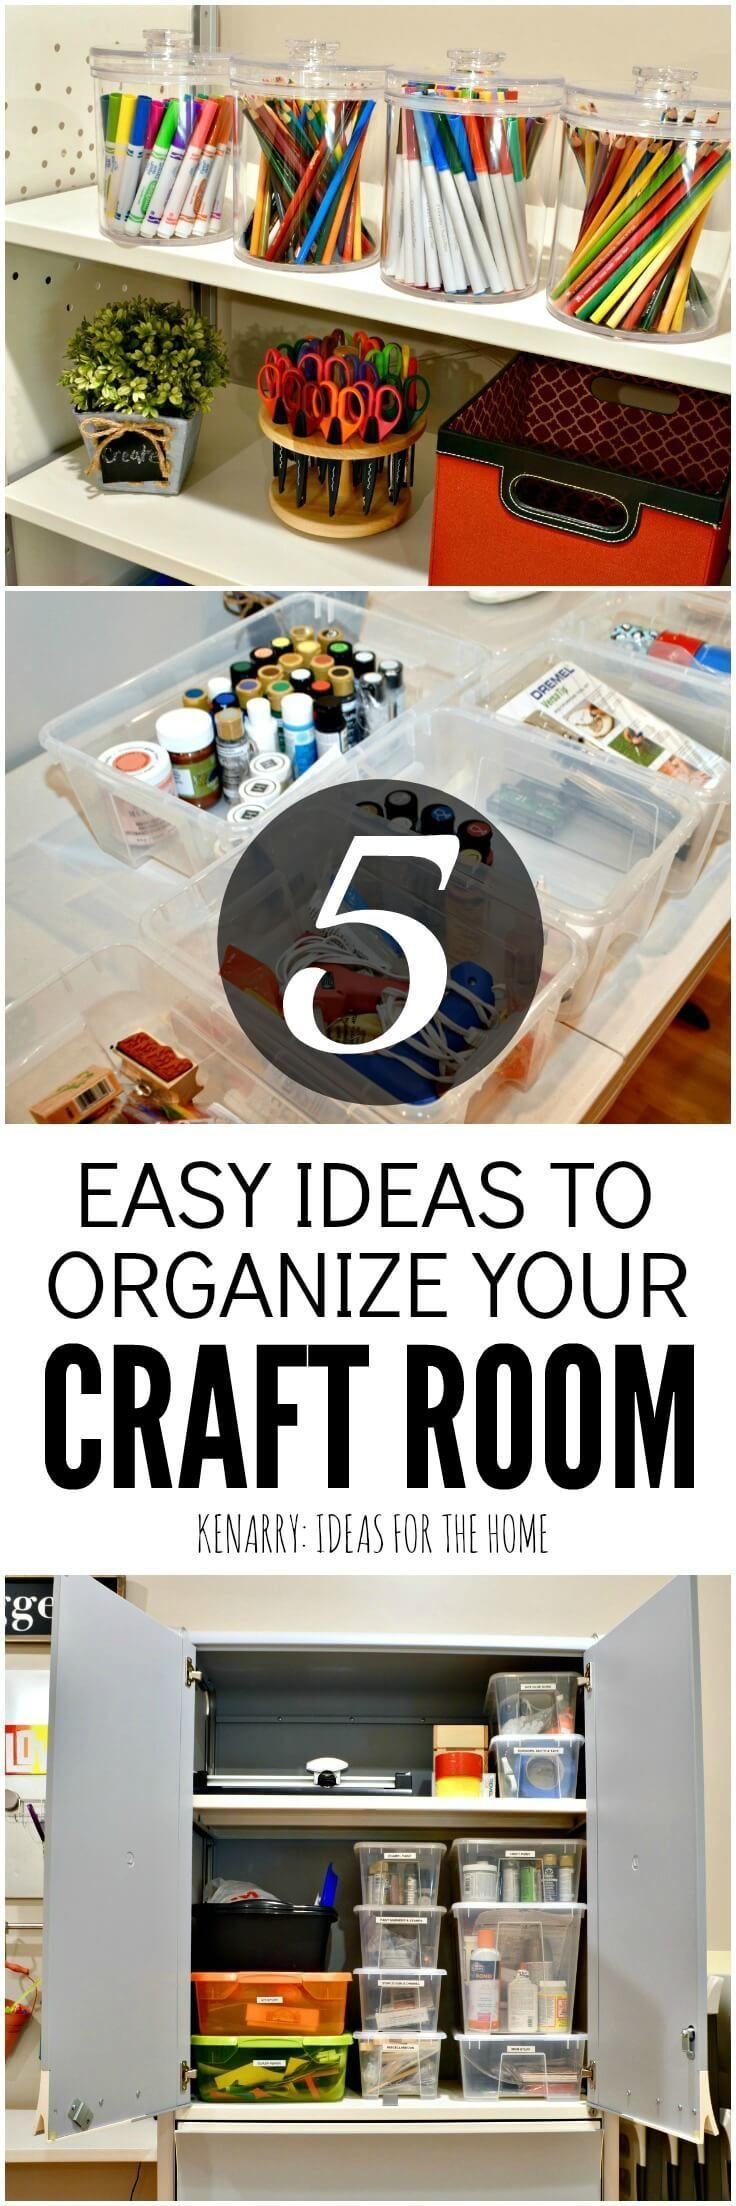 Easy baby scrapbook ideas - Craft Room Organization 5 Easy And Creative Ideas To Tidy Up Supplies